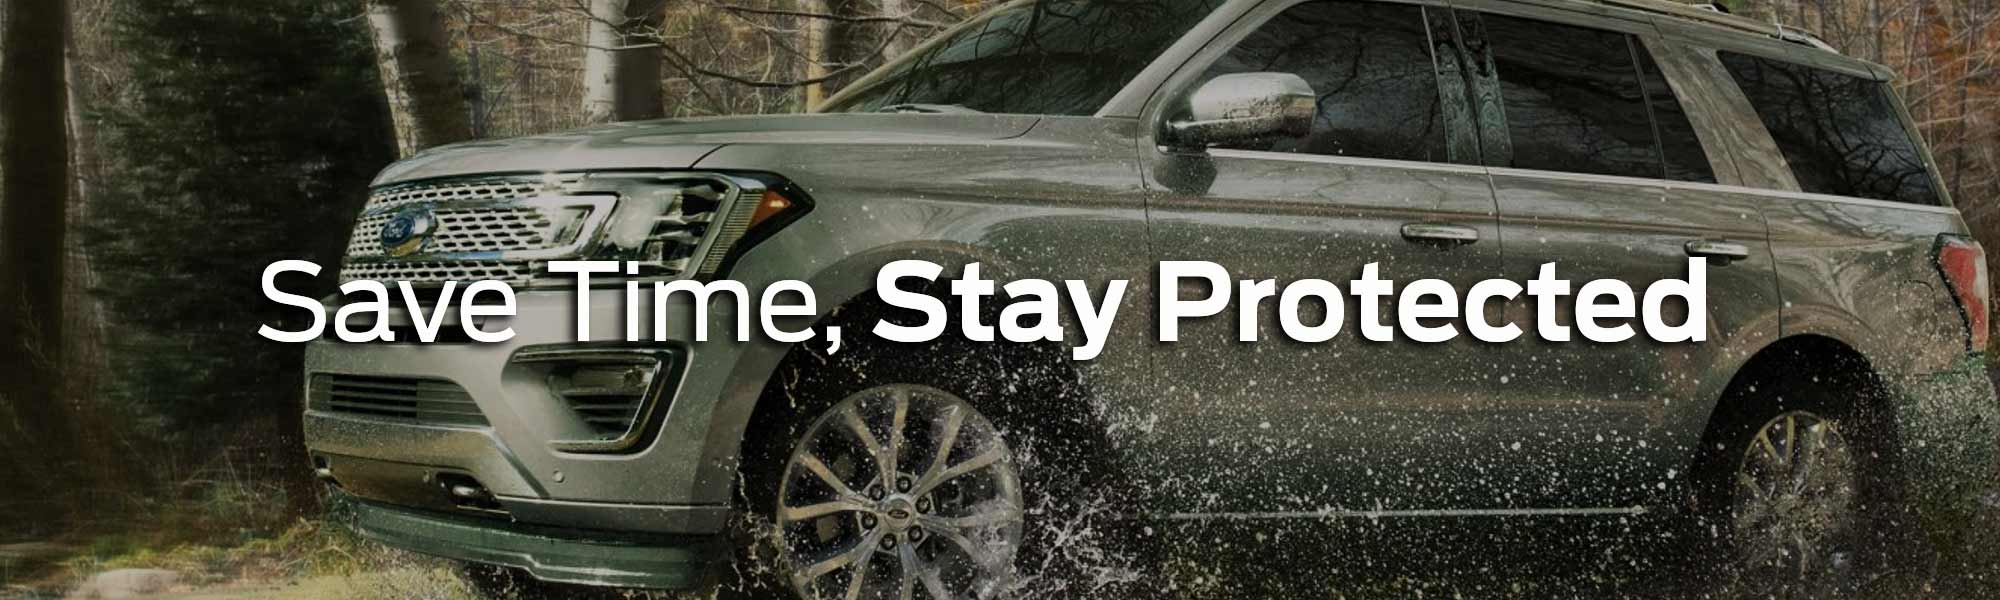 Ford protection options